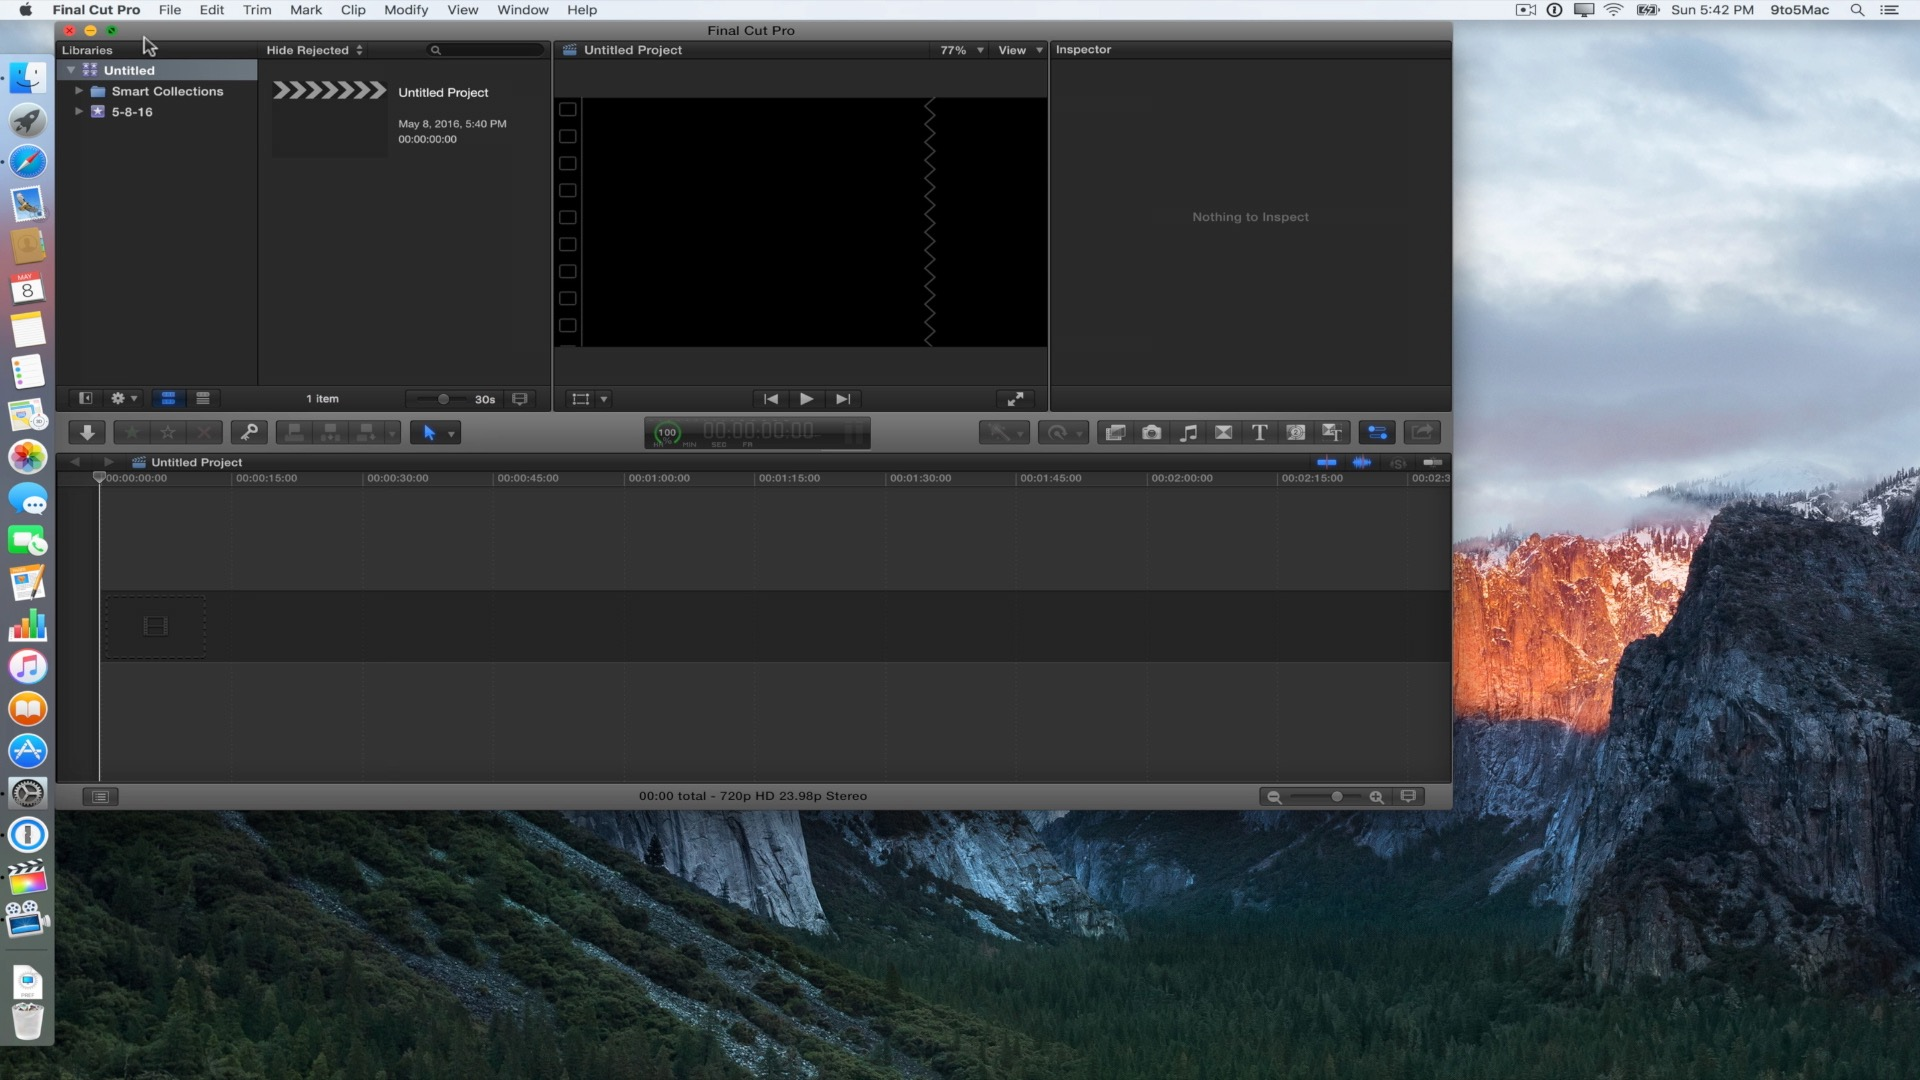 SwitcherResX More Real Estate Final Cut Pro X